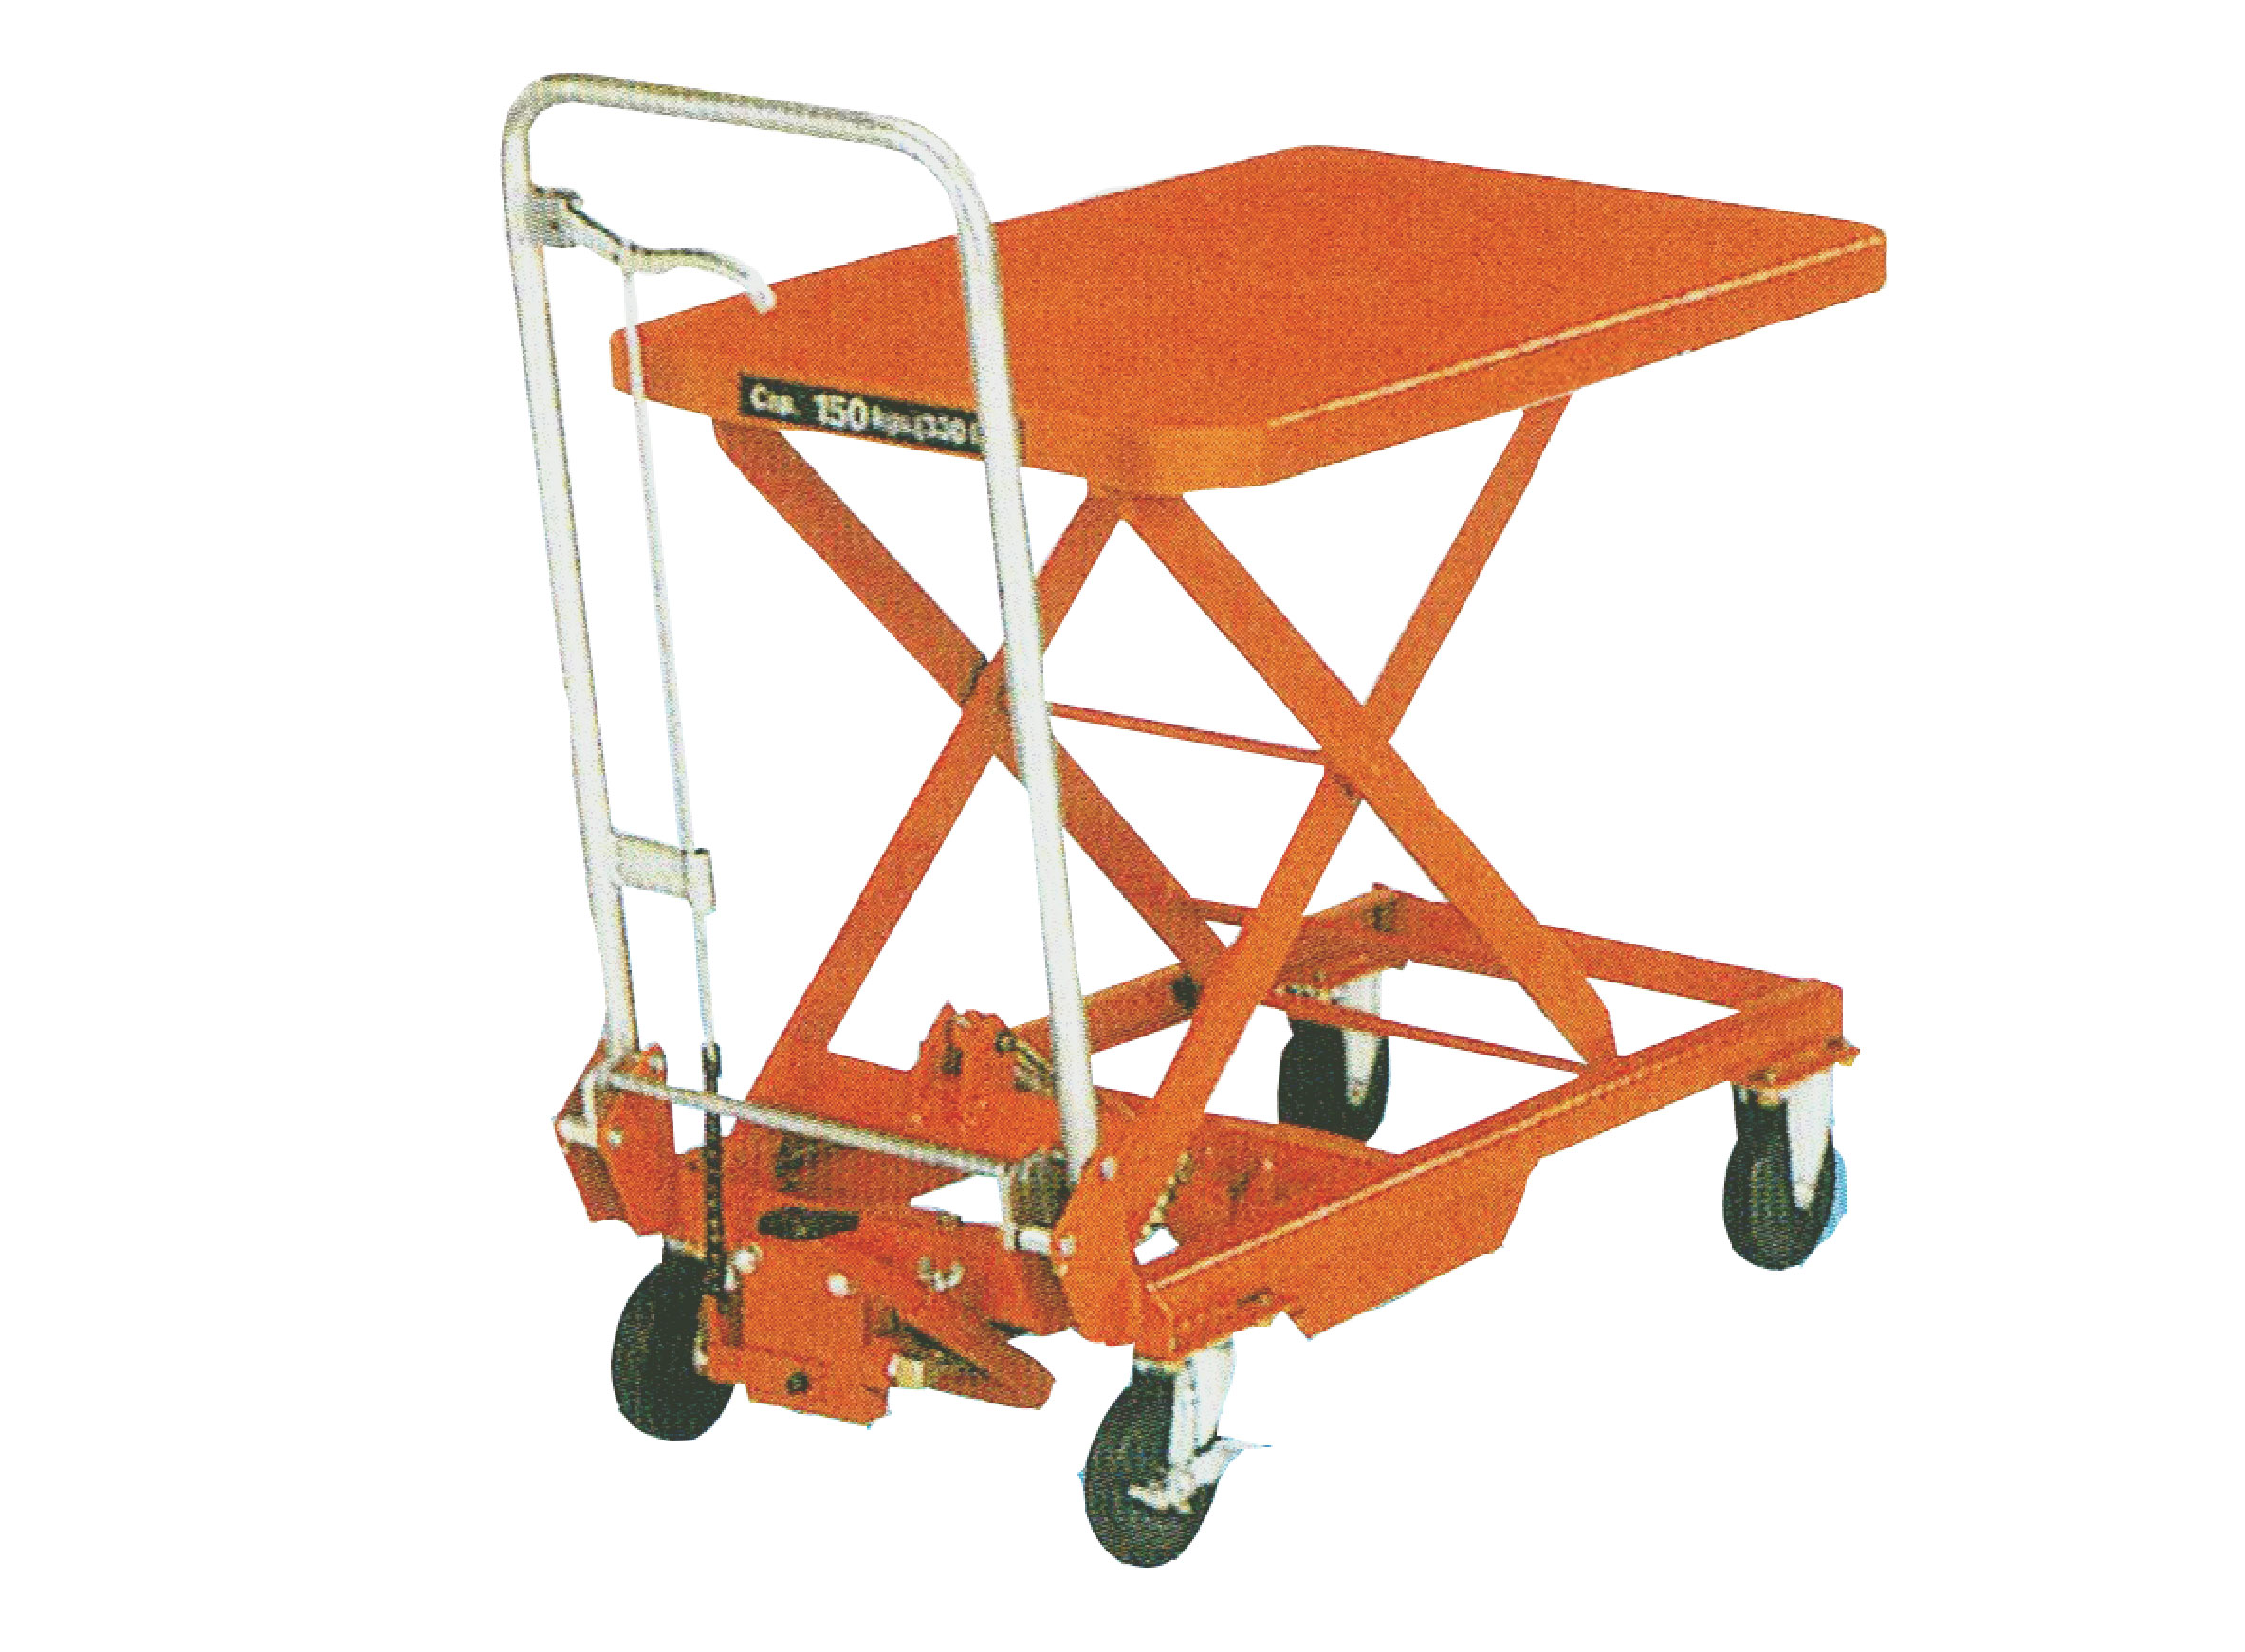 Step-up hydraulic lifting trolley